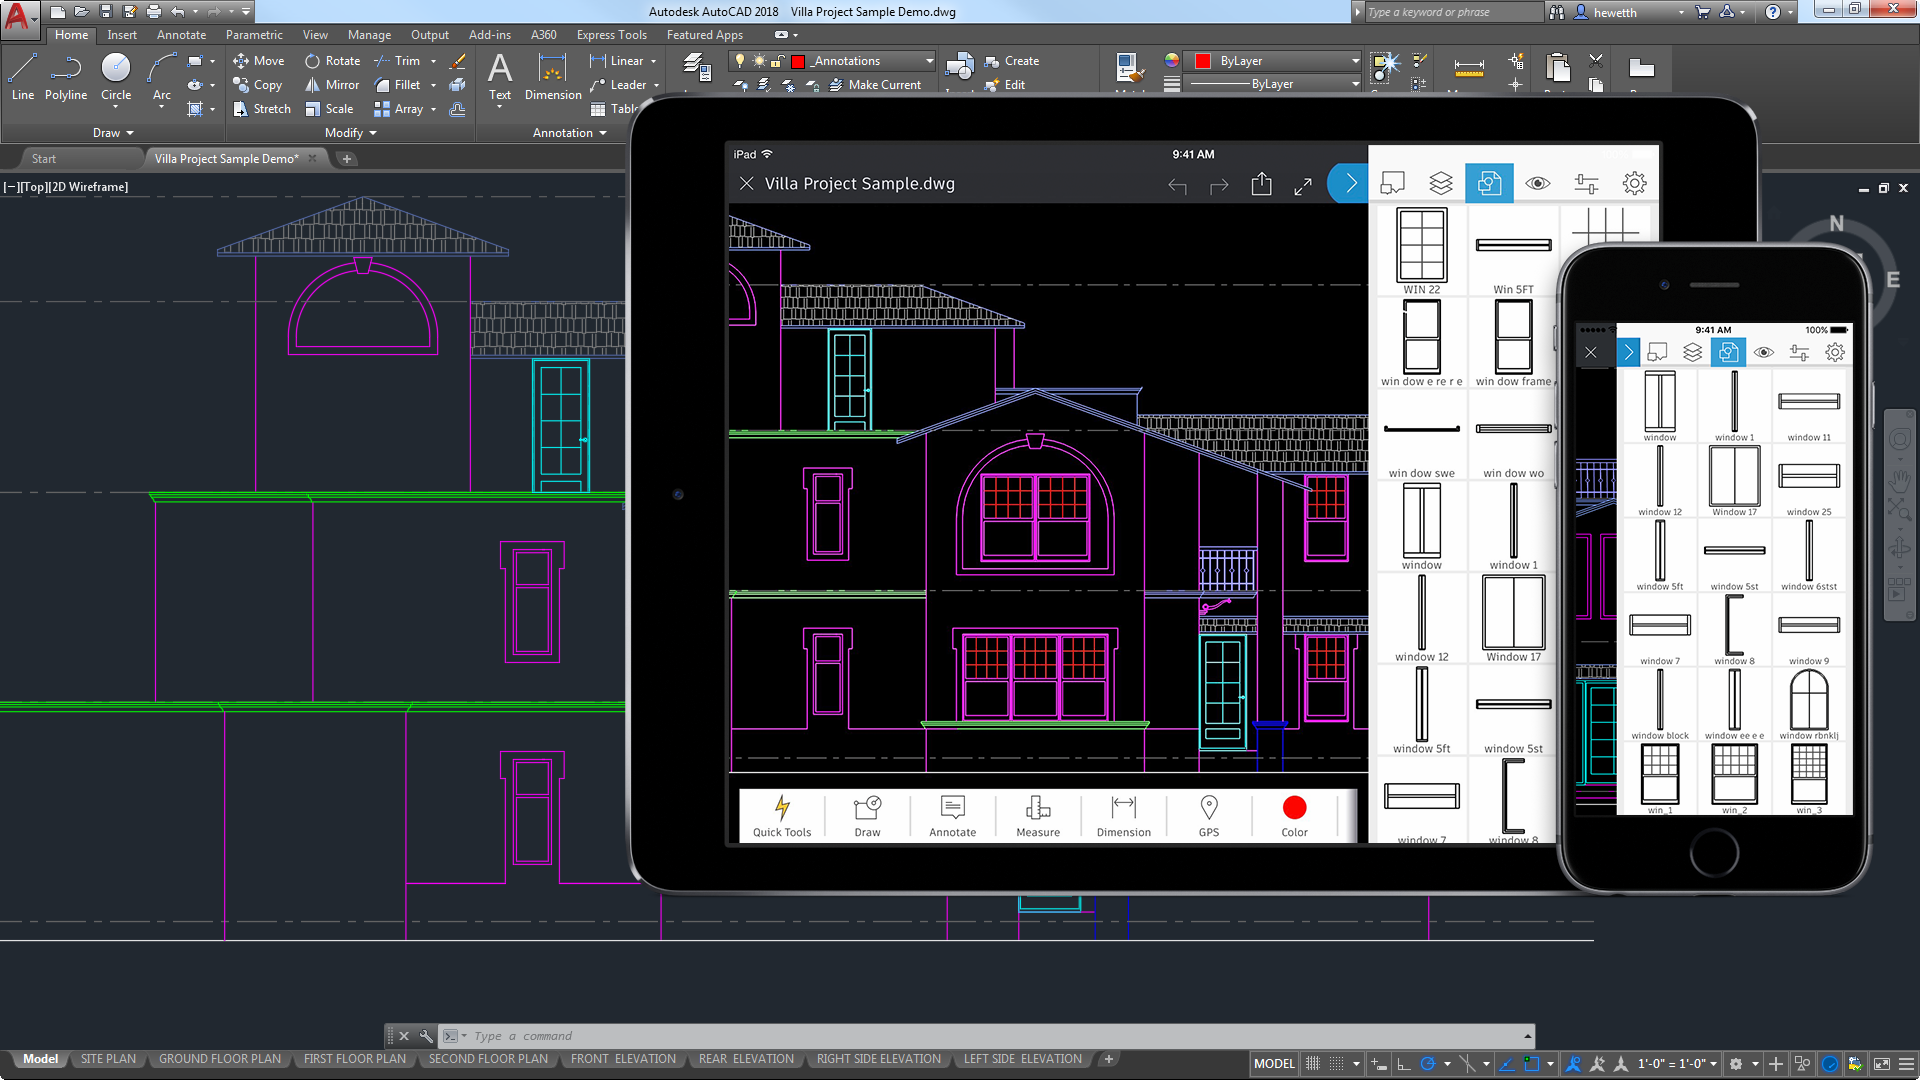 Autocad For Mac Windows Cad Software Autodesk Wiring Design Ware Share And Use Data From Pdf Dgn Files Navisworks Bing Maps